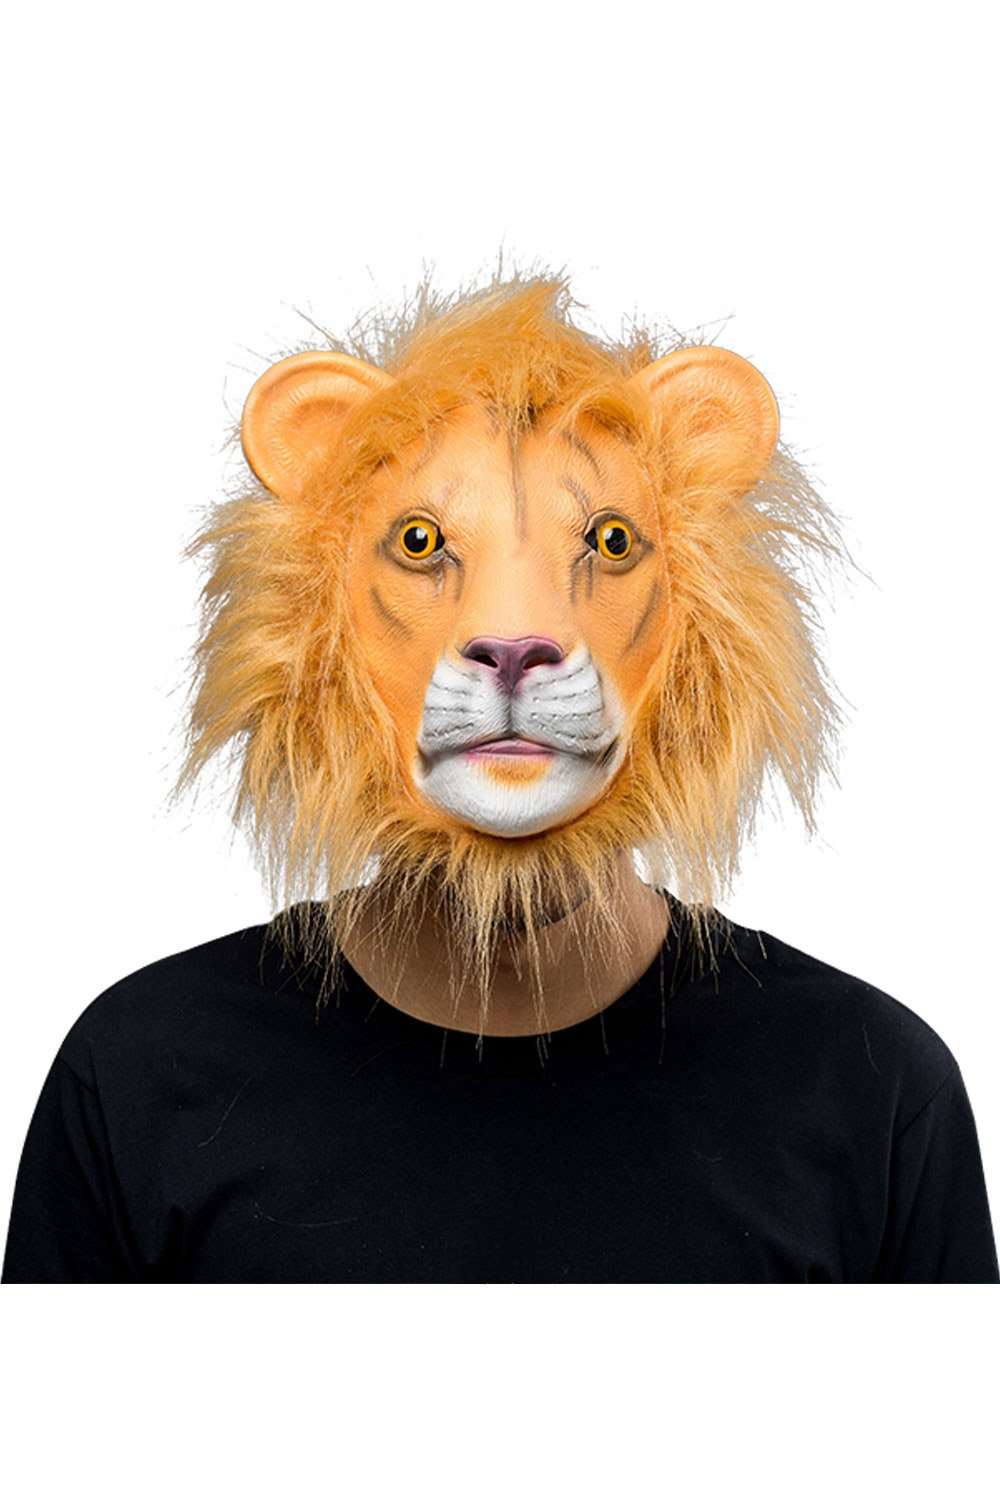 Lion Full Face Mask Halloween Animal Latex Masks Adult Cosplay Props